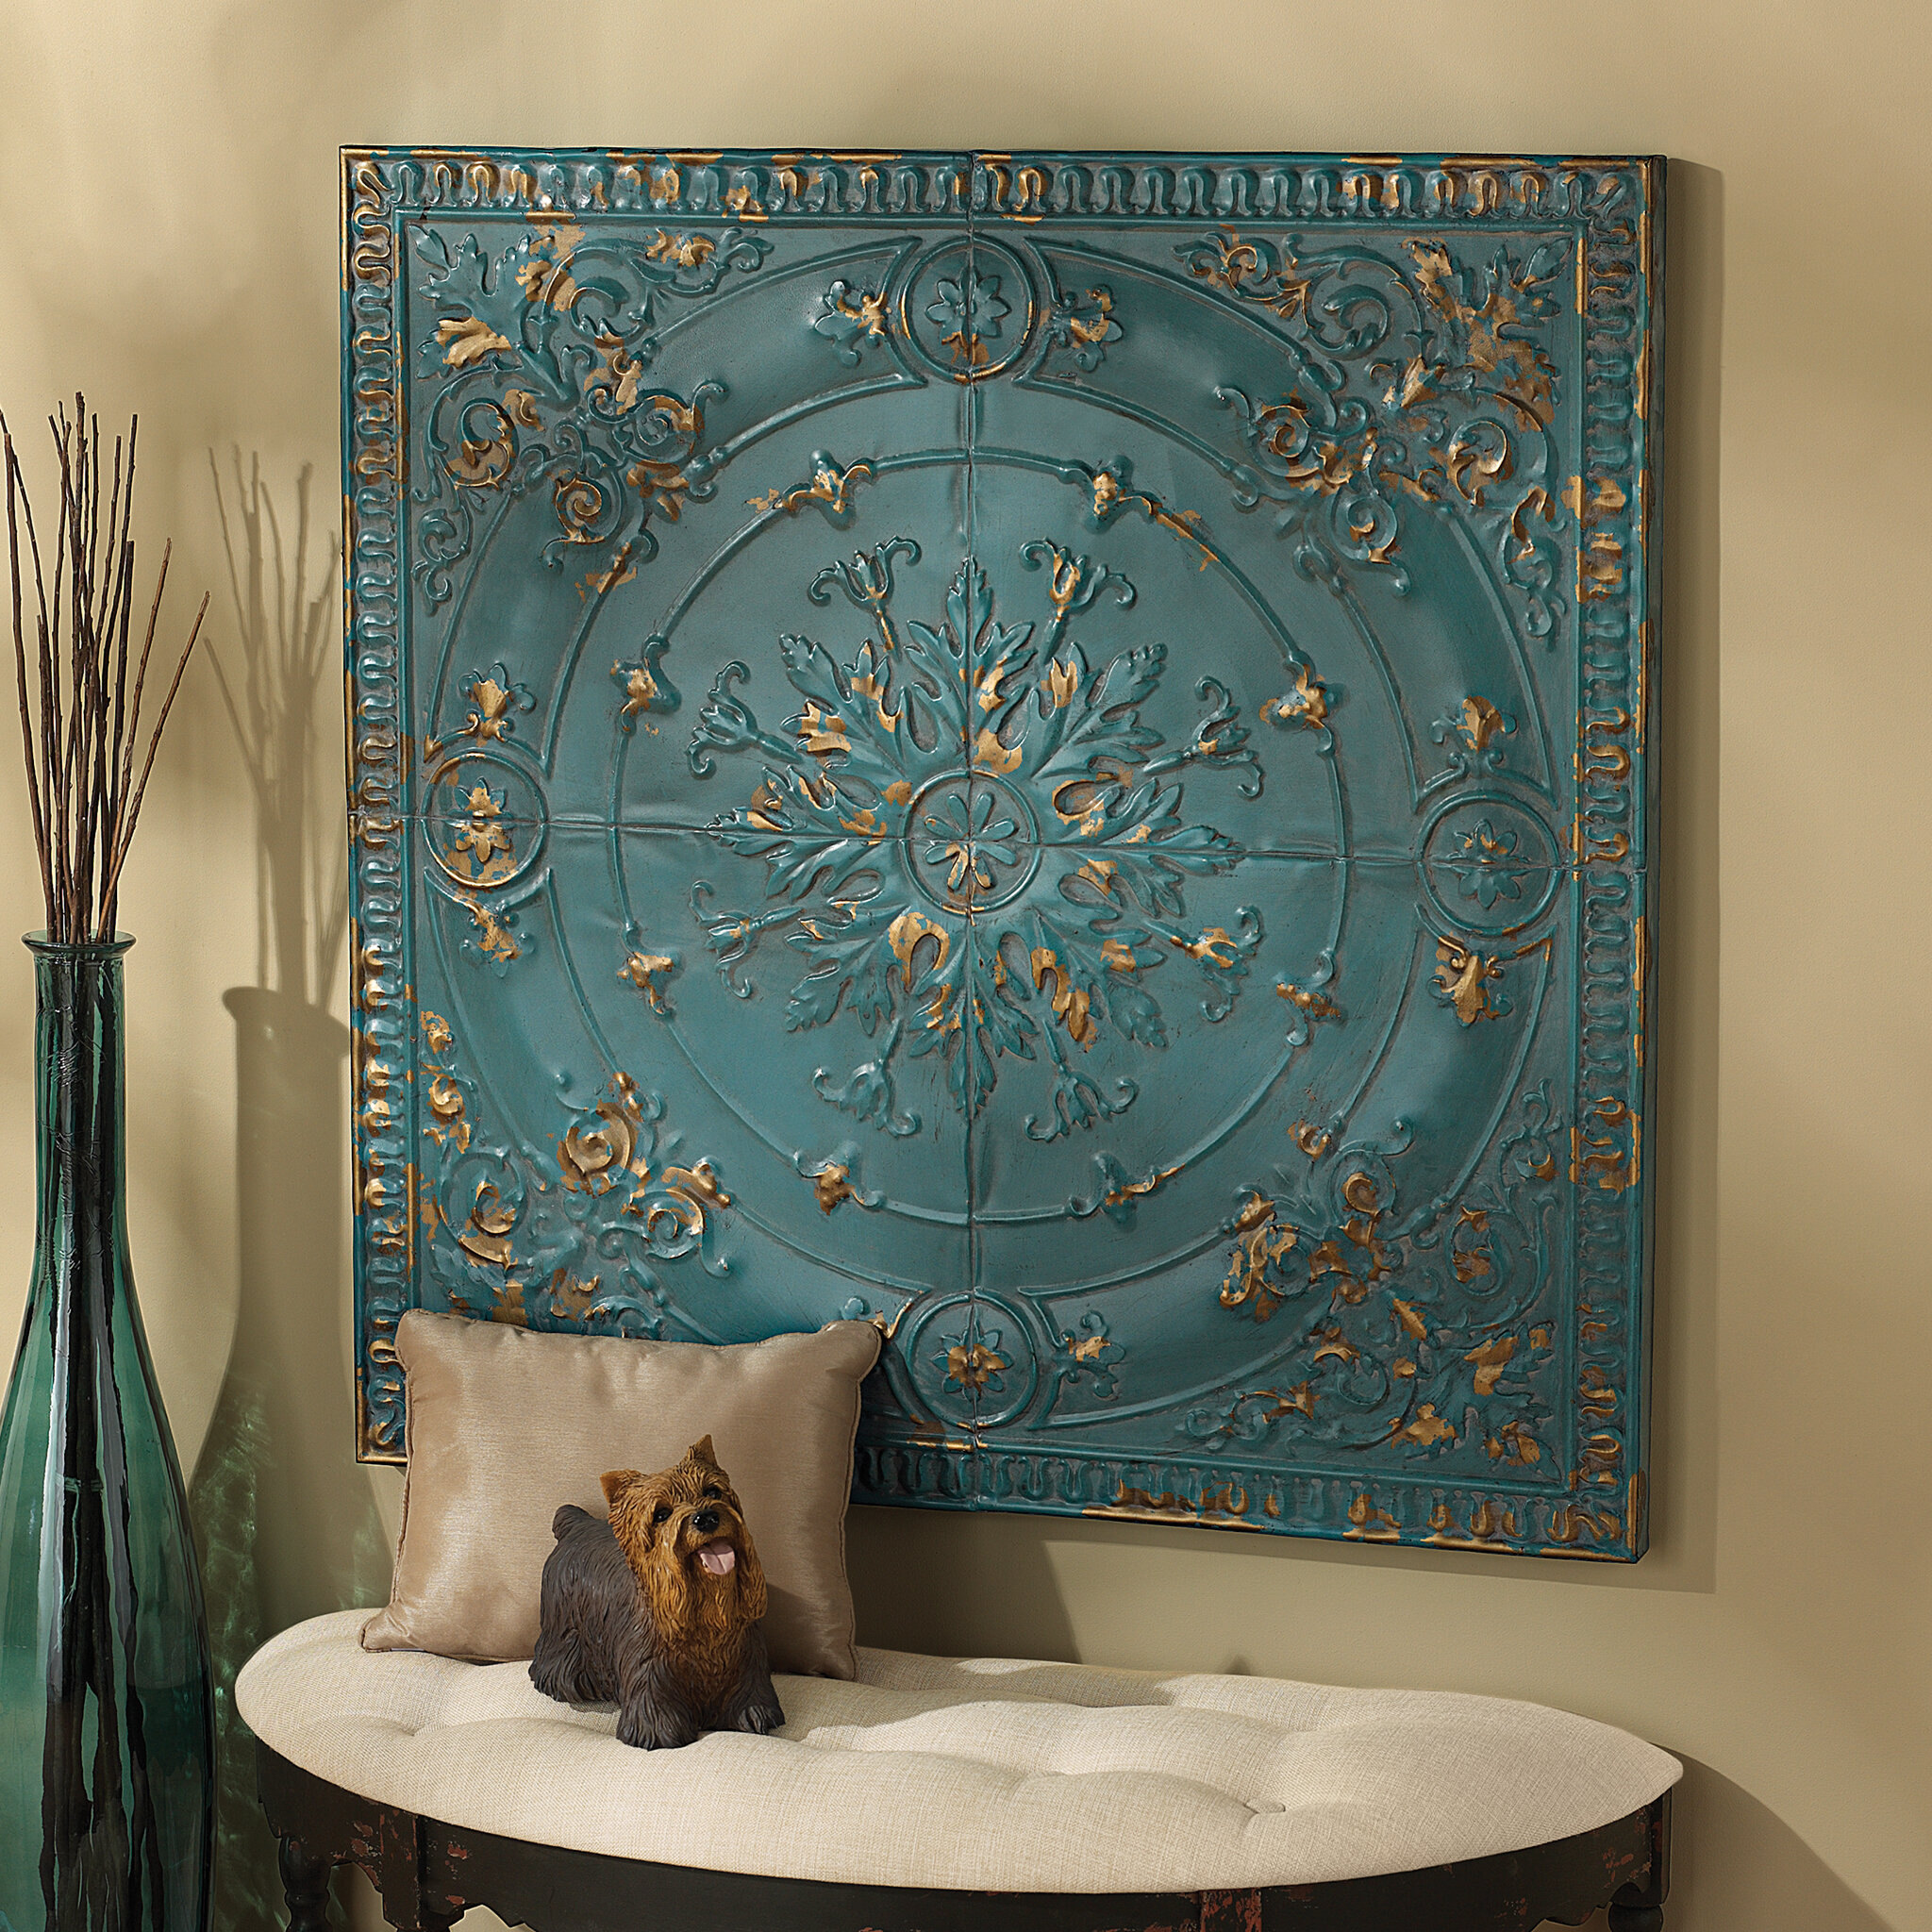 Design toscano viennese pressed metal ceiling tile wall dcor design toscano viennese pressed metal ceiling tile wall dcor reviews wayfair dailygadgetfo Choice Image